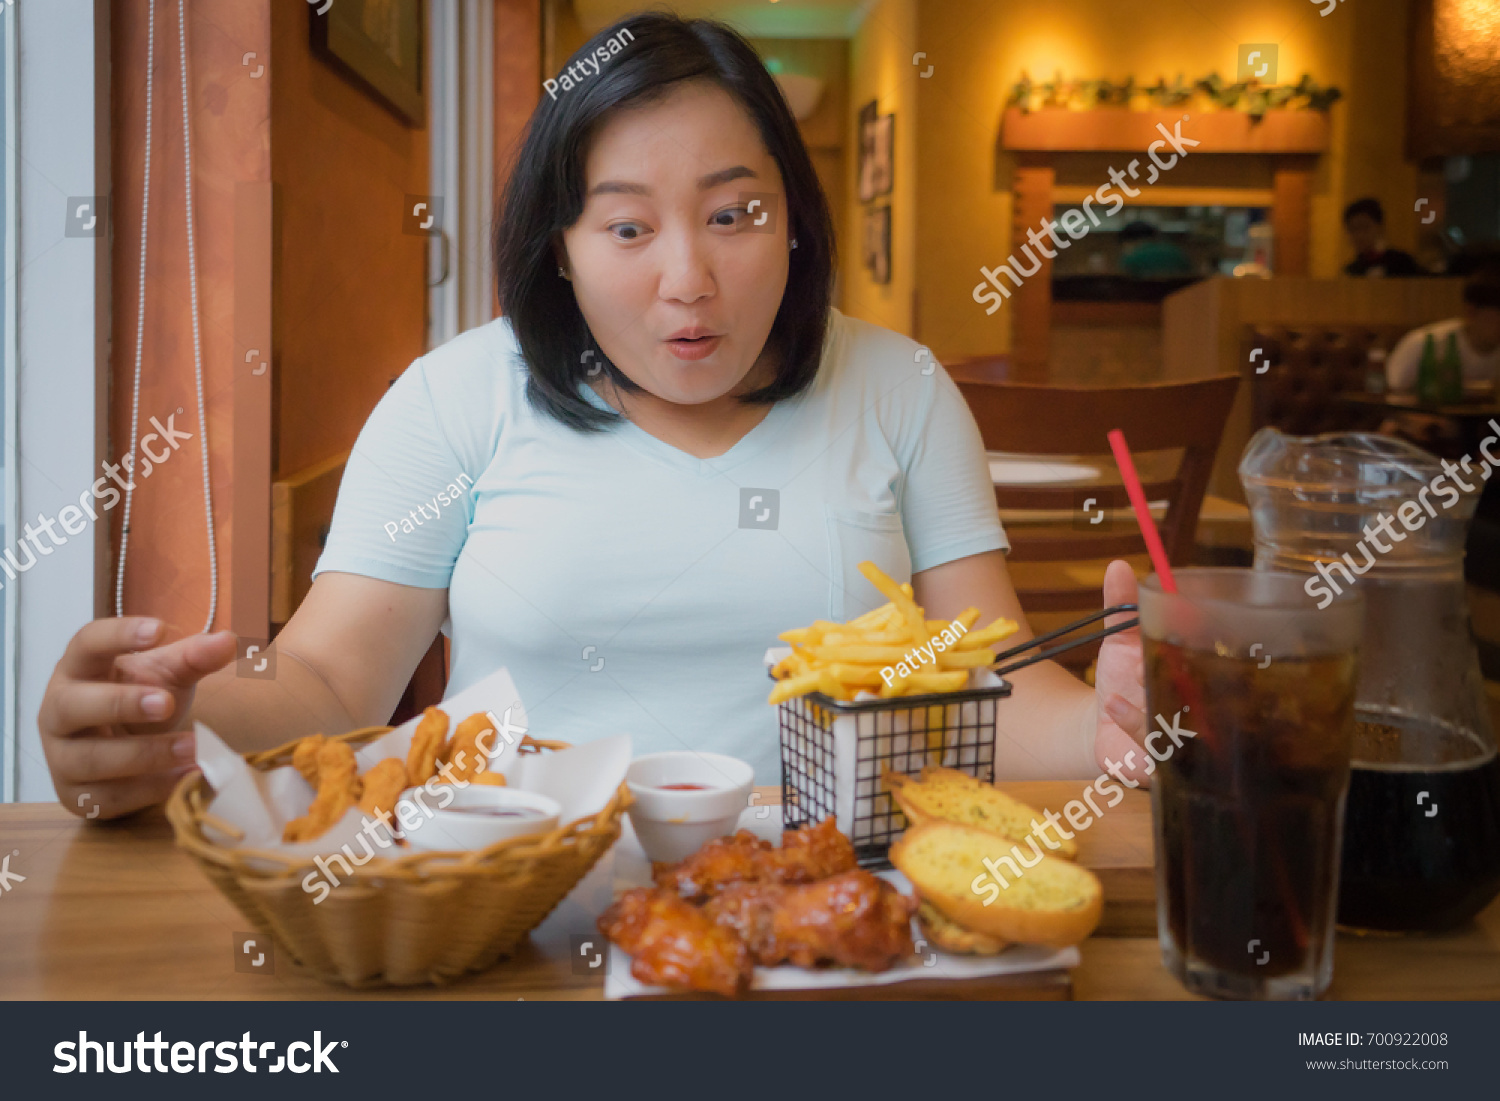 Fat Asian Woman Happy With Fast Foods In Restuarantoverweight Female Enjoy Eating Unhealthy